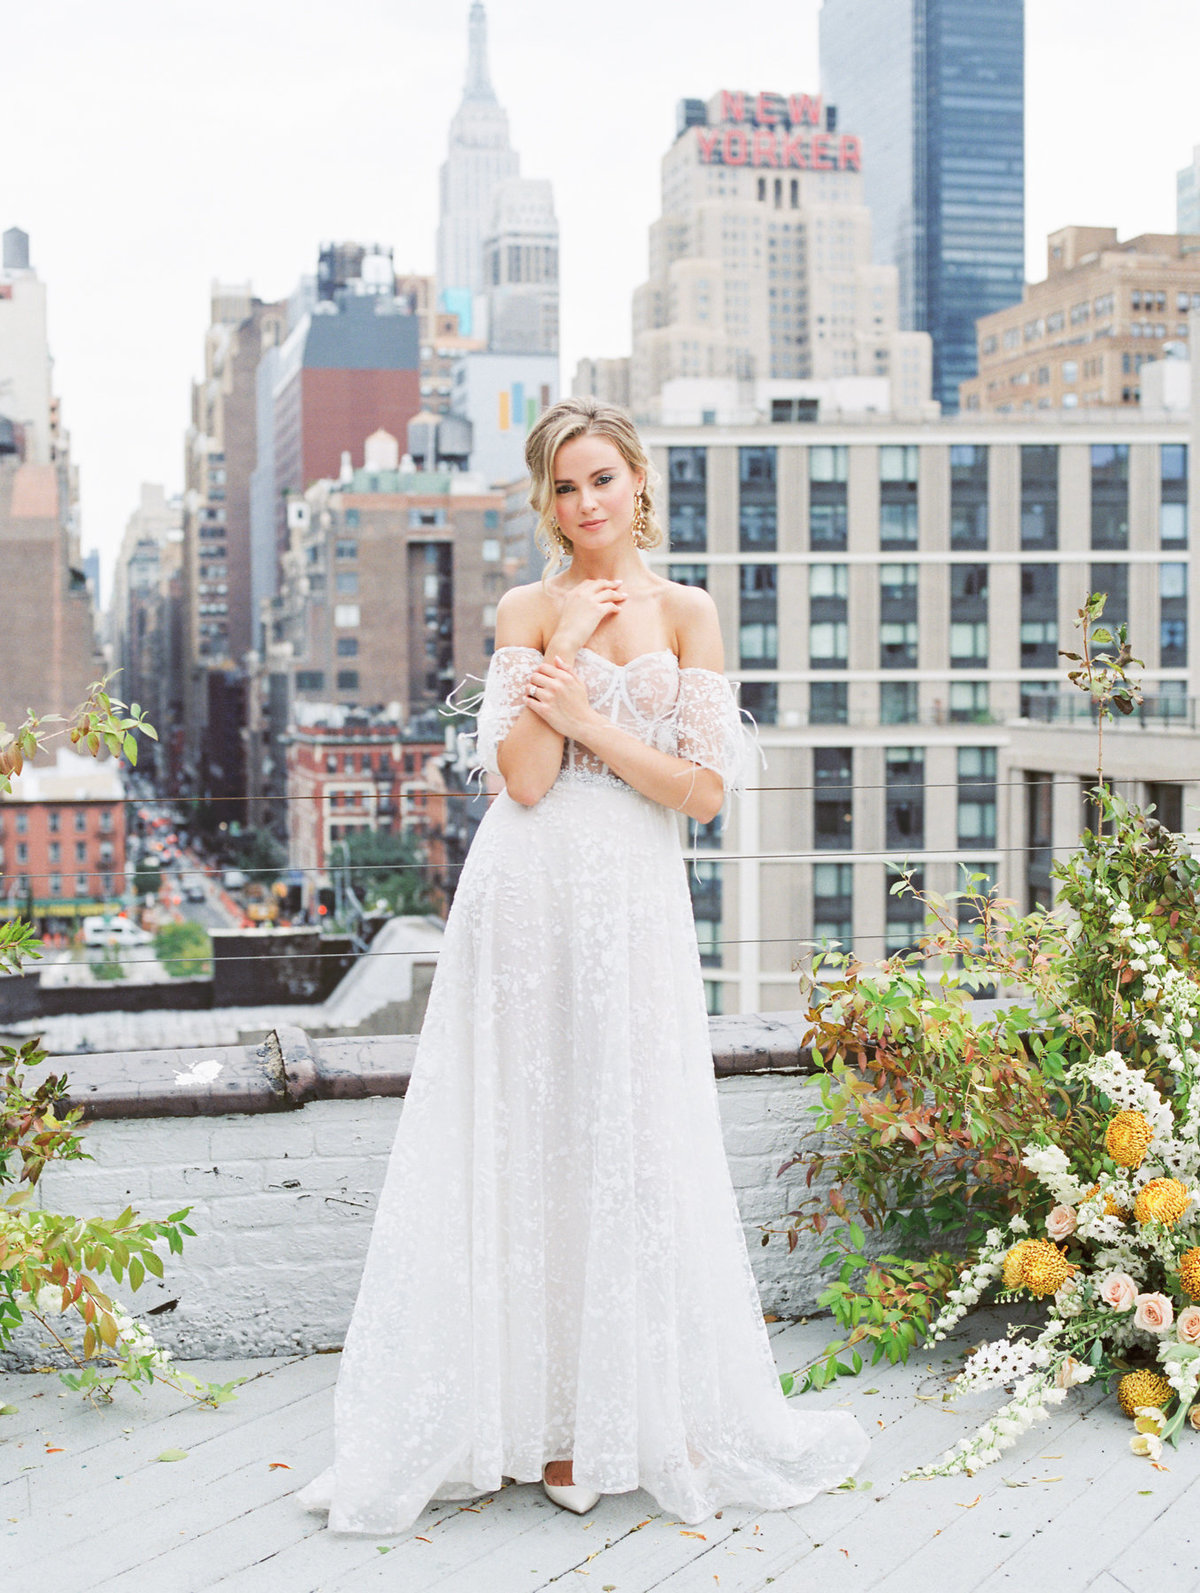 Michelle Behre Photography New Jersey Fine Art Wedding Photographer at Hudson Yards Loft NYC Haute Couture Bridal Editorial-025